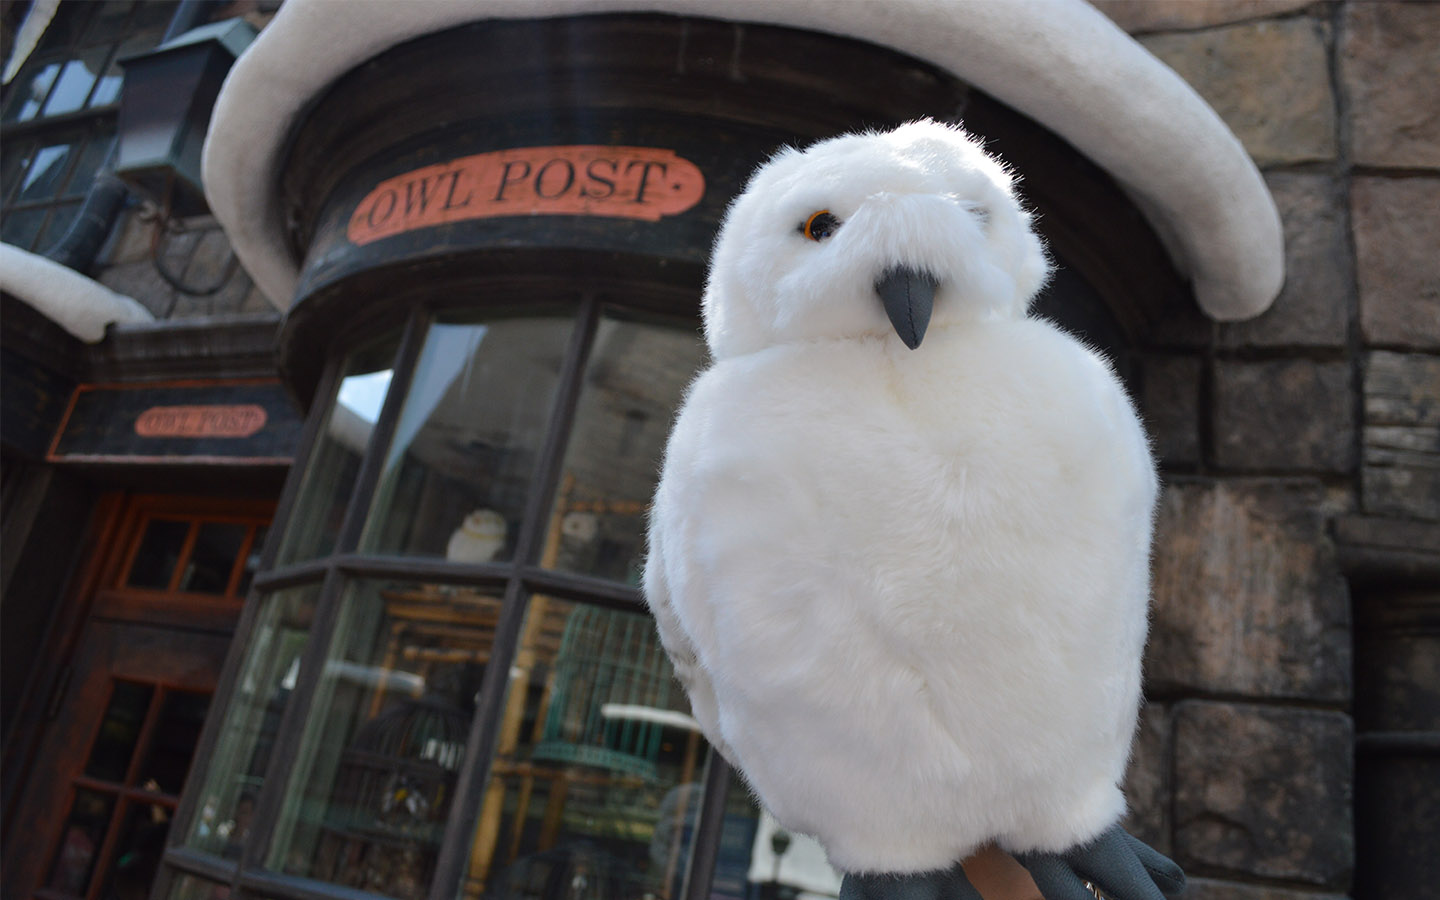 Send Mail From Owl Post In The Wizarding World Of Harry Potter